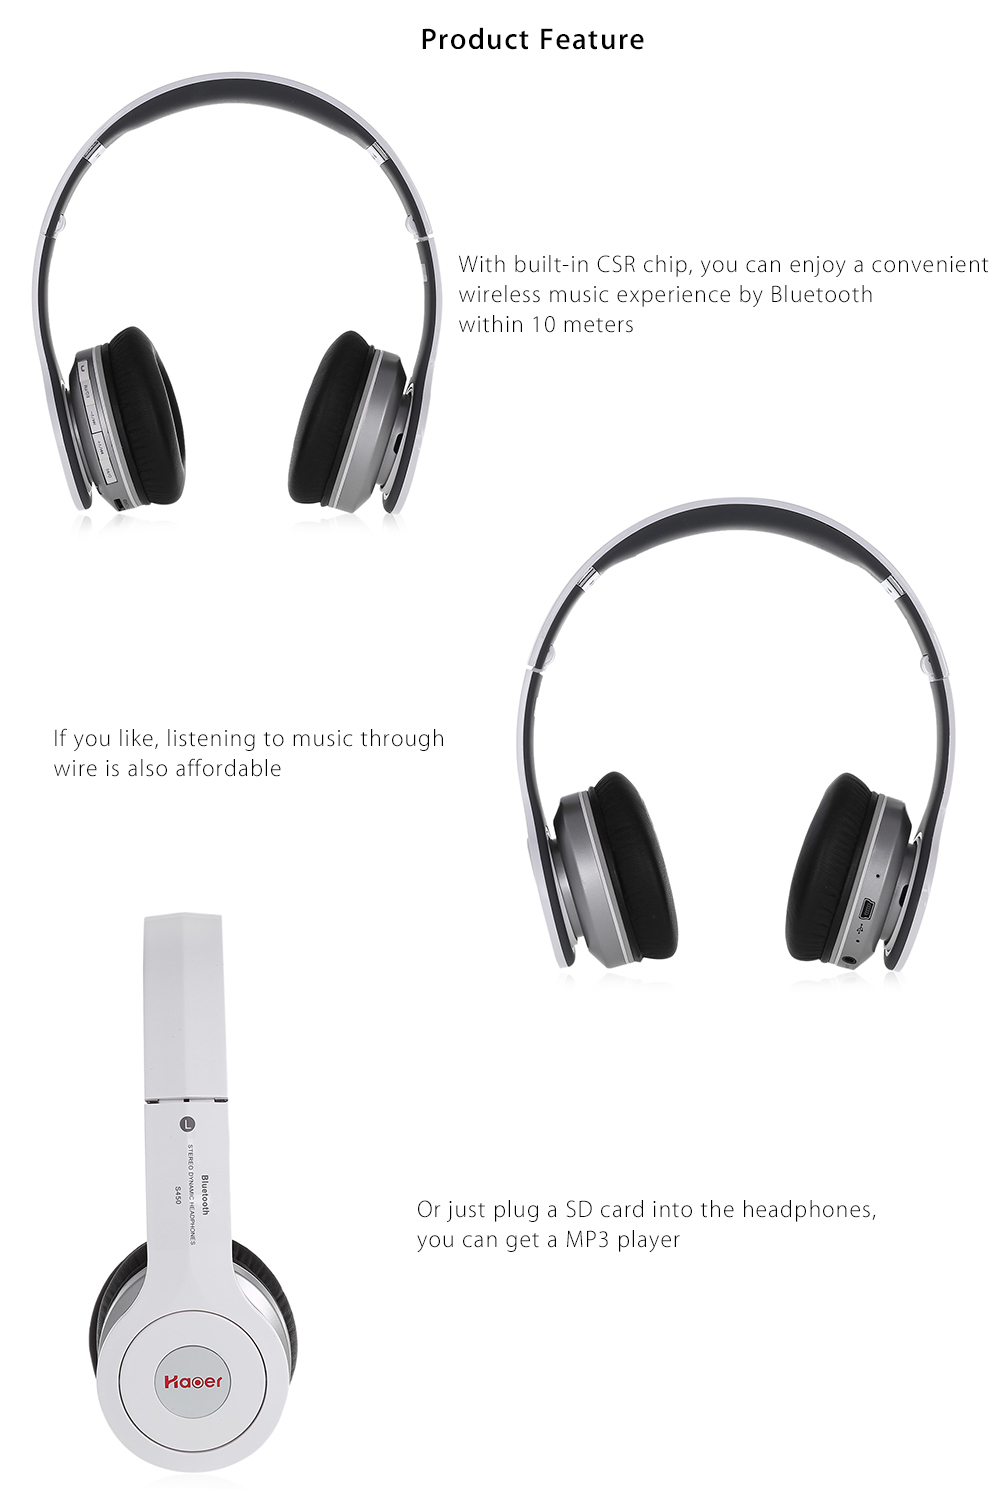 Haoer S750 Wireless Bluetooth V4.1 Foldable Over-ear Headphones Noise Reduction FM Receiver